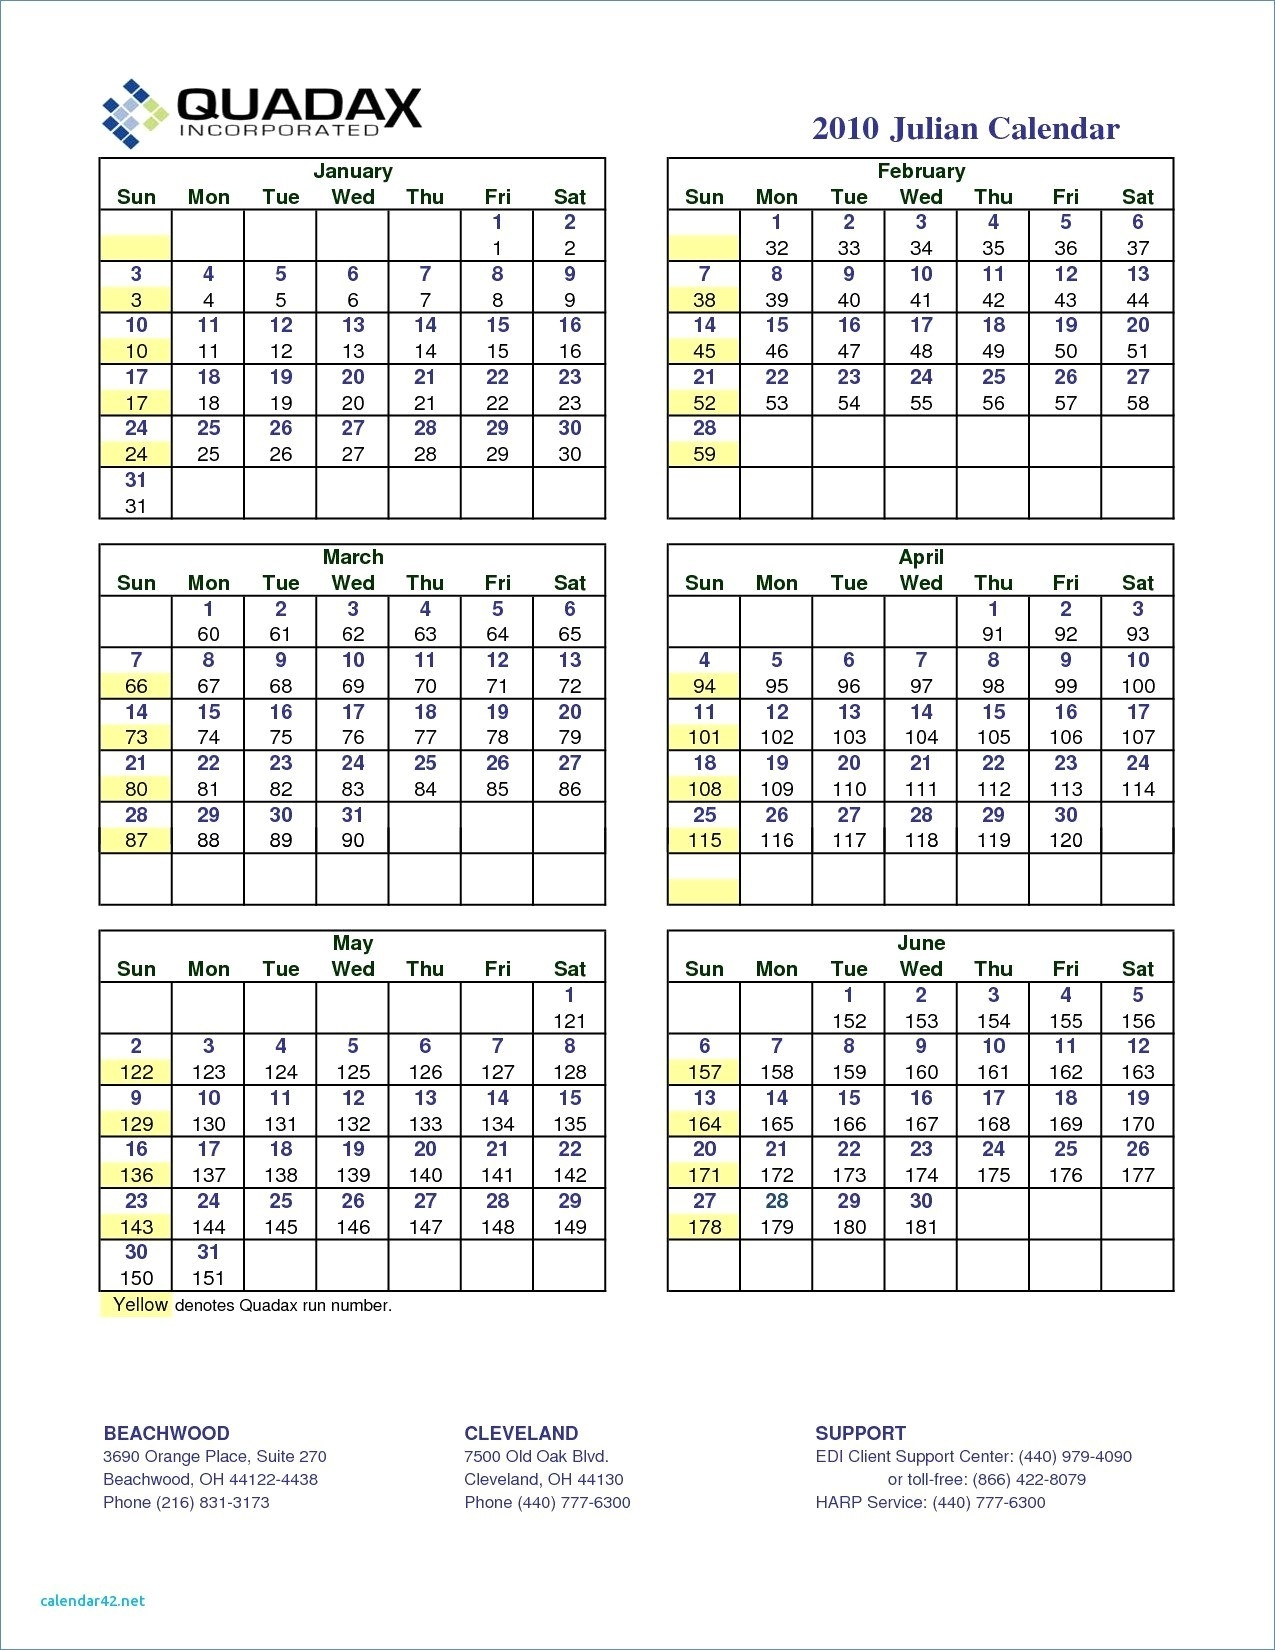 Quadax Julian Calendar 2020 Pdf | Example Calendar Printable pertaining to Quadax Julian Date Calendar 2020